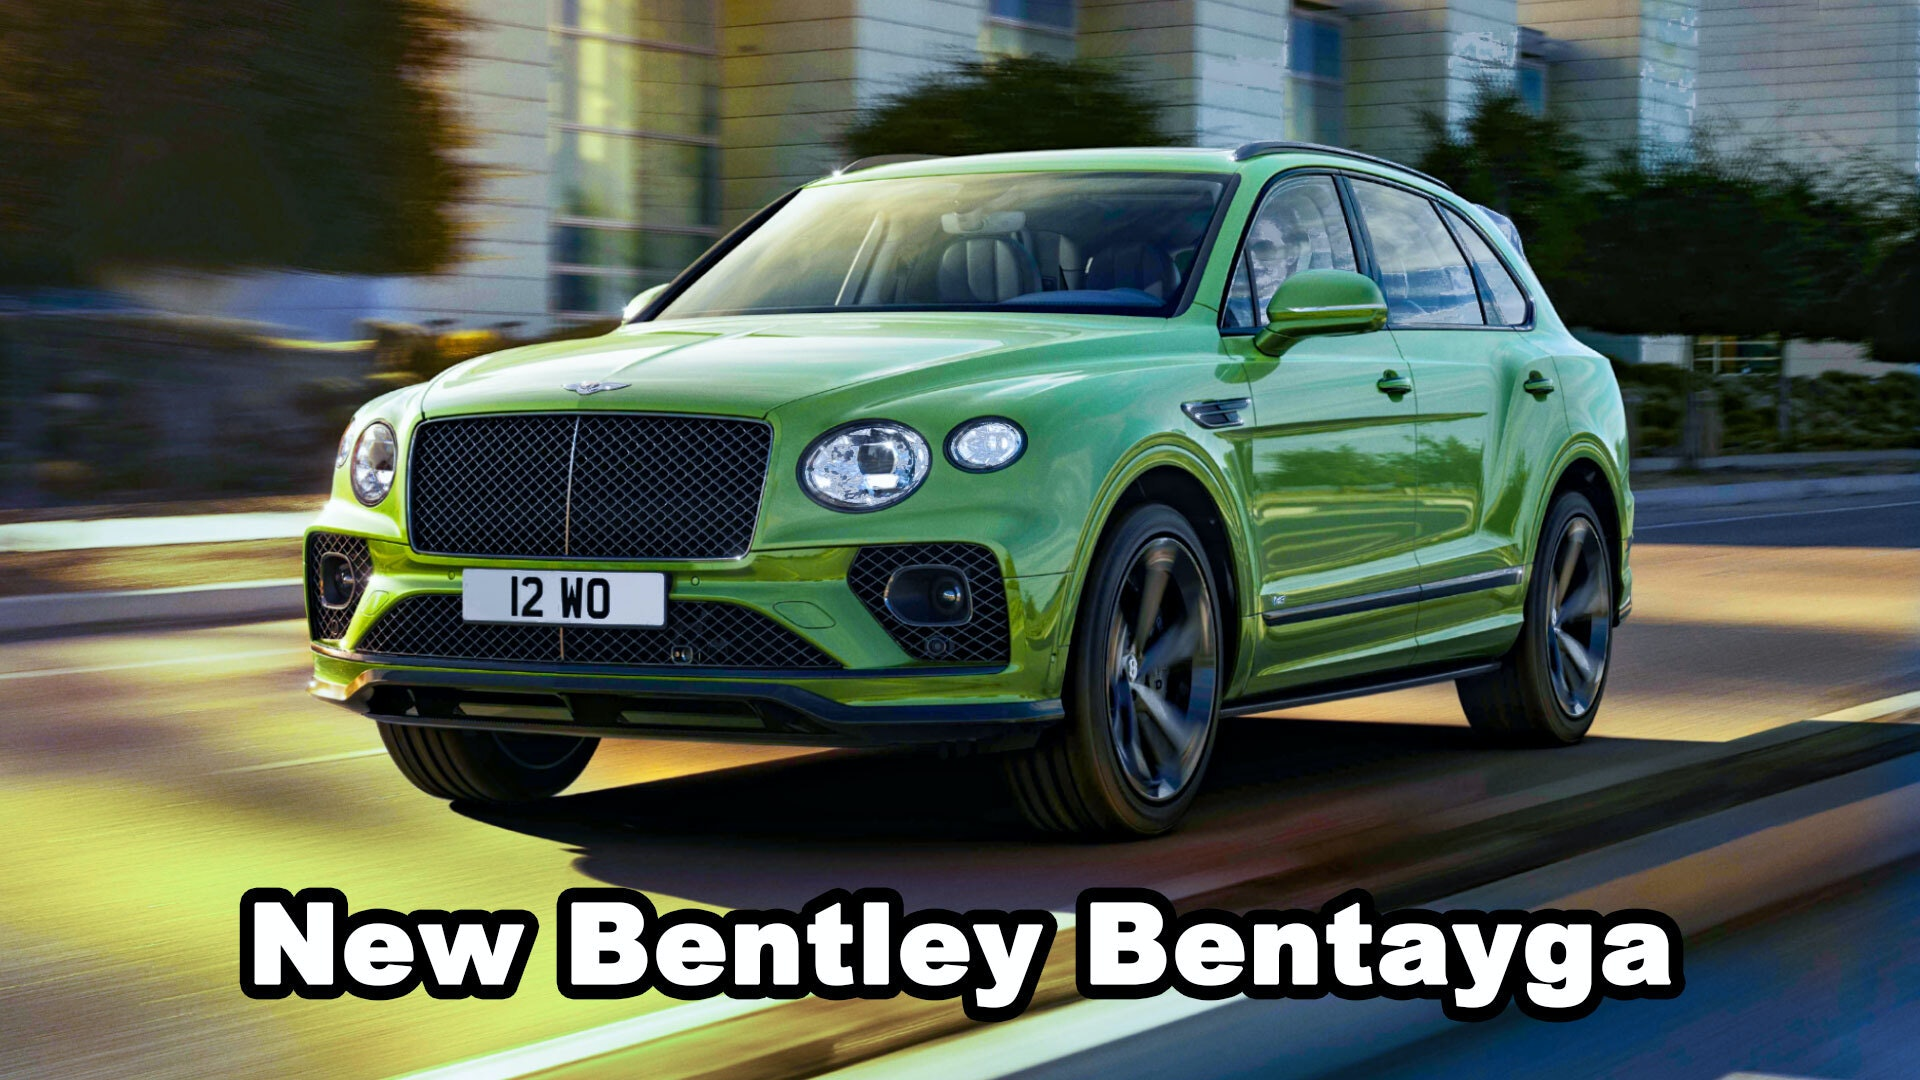 2021 Bentley Bentayga Revealed Price Specs And Release Date Carwow